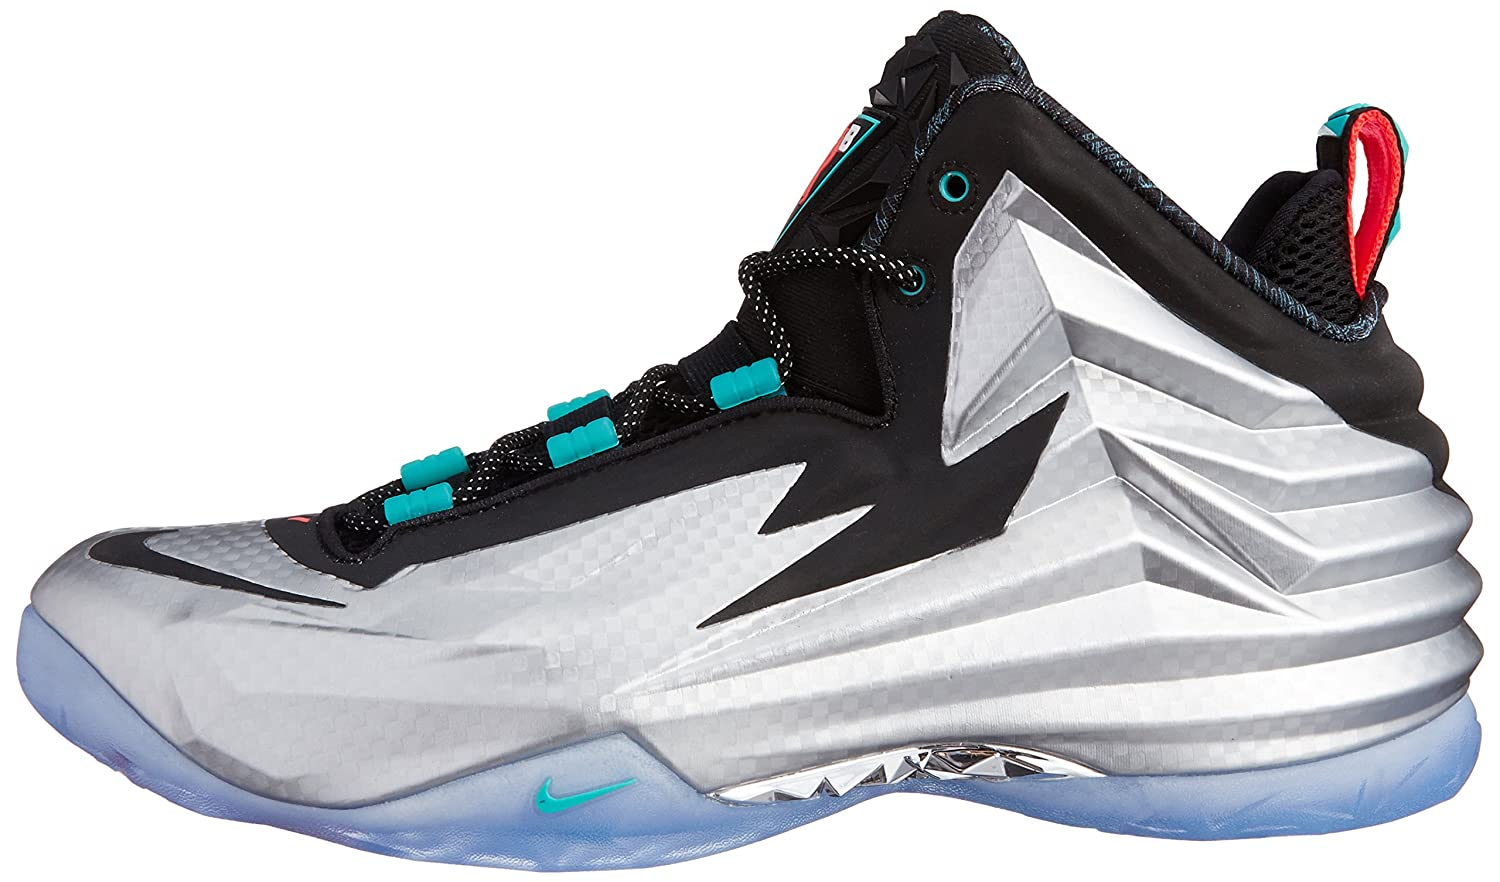 Nike Chuck Posite Lifestyle Men US 9.5 Silver Basketball Shoe: Buy Online  at Low Prices in India - Amazon.in